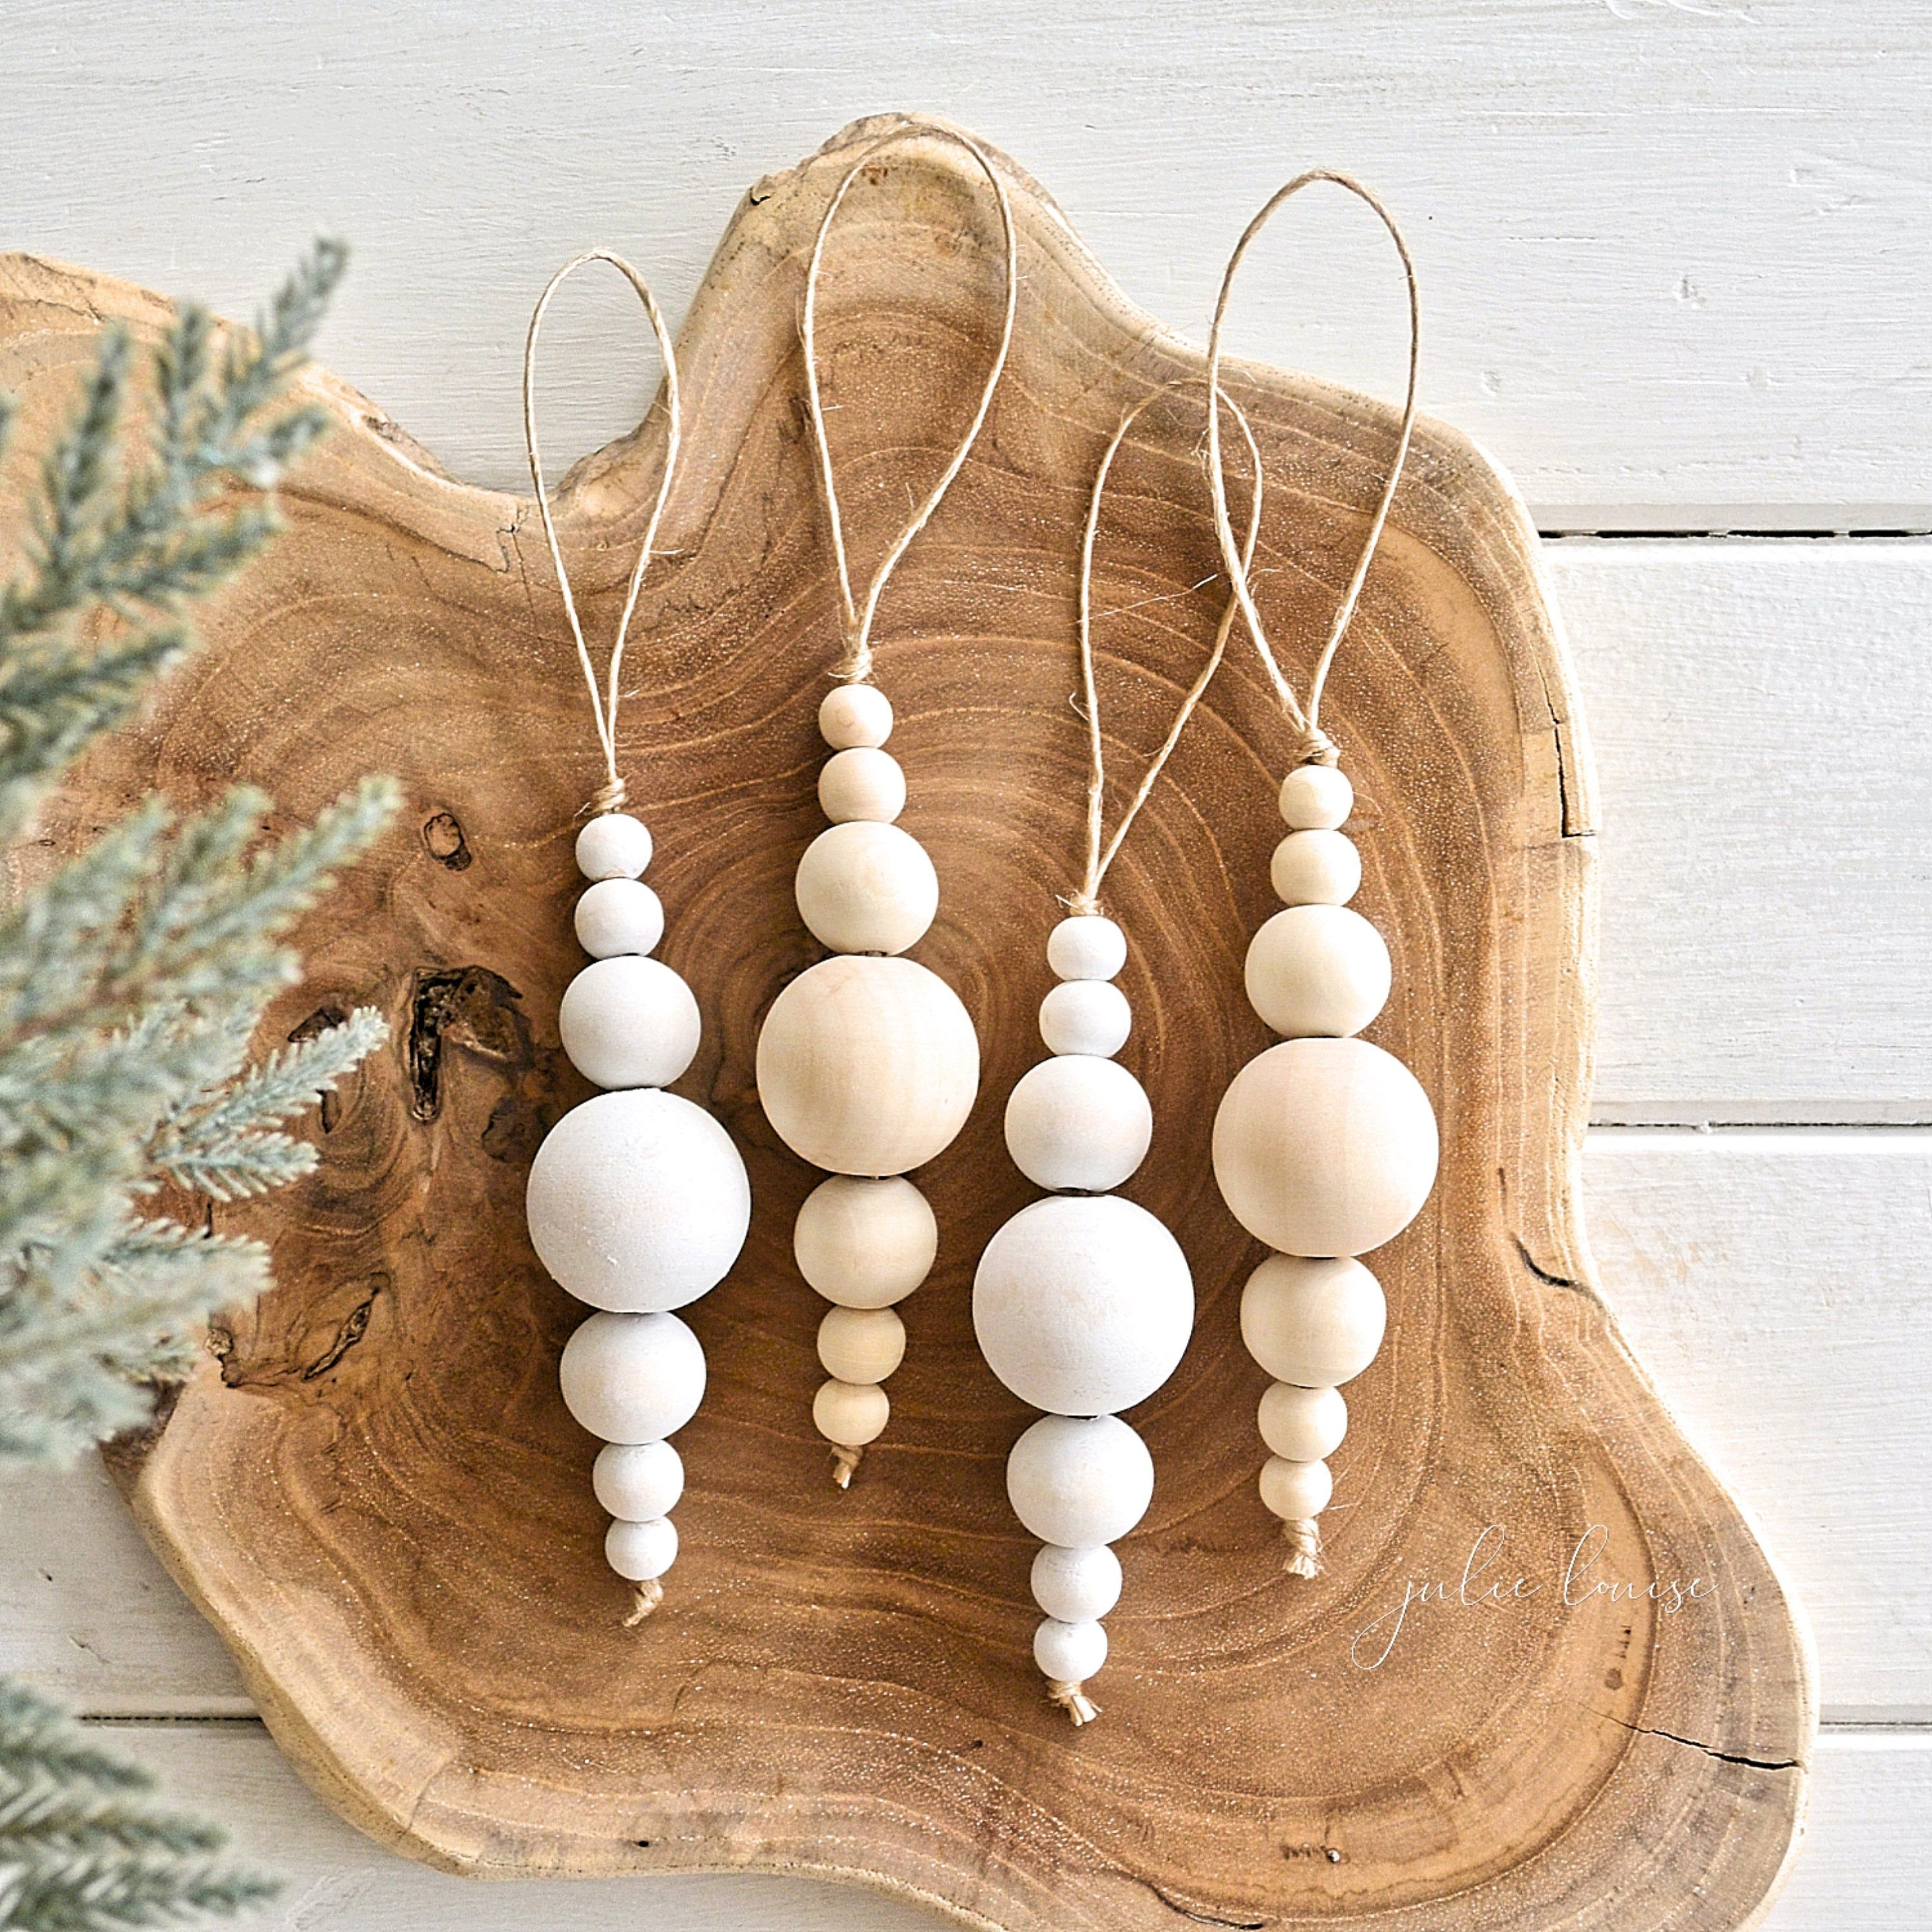 Wood Bead Christmas Bauble White or Natural Decoration Home Decor Farmhouse Tree Decorations Boho Rustic 30mm Beads EcoFriendly Julie Louise #christmasornaments